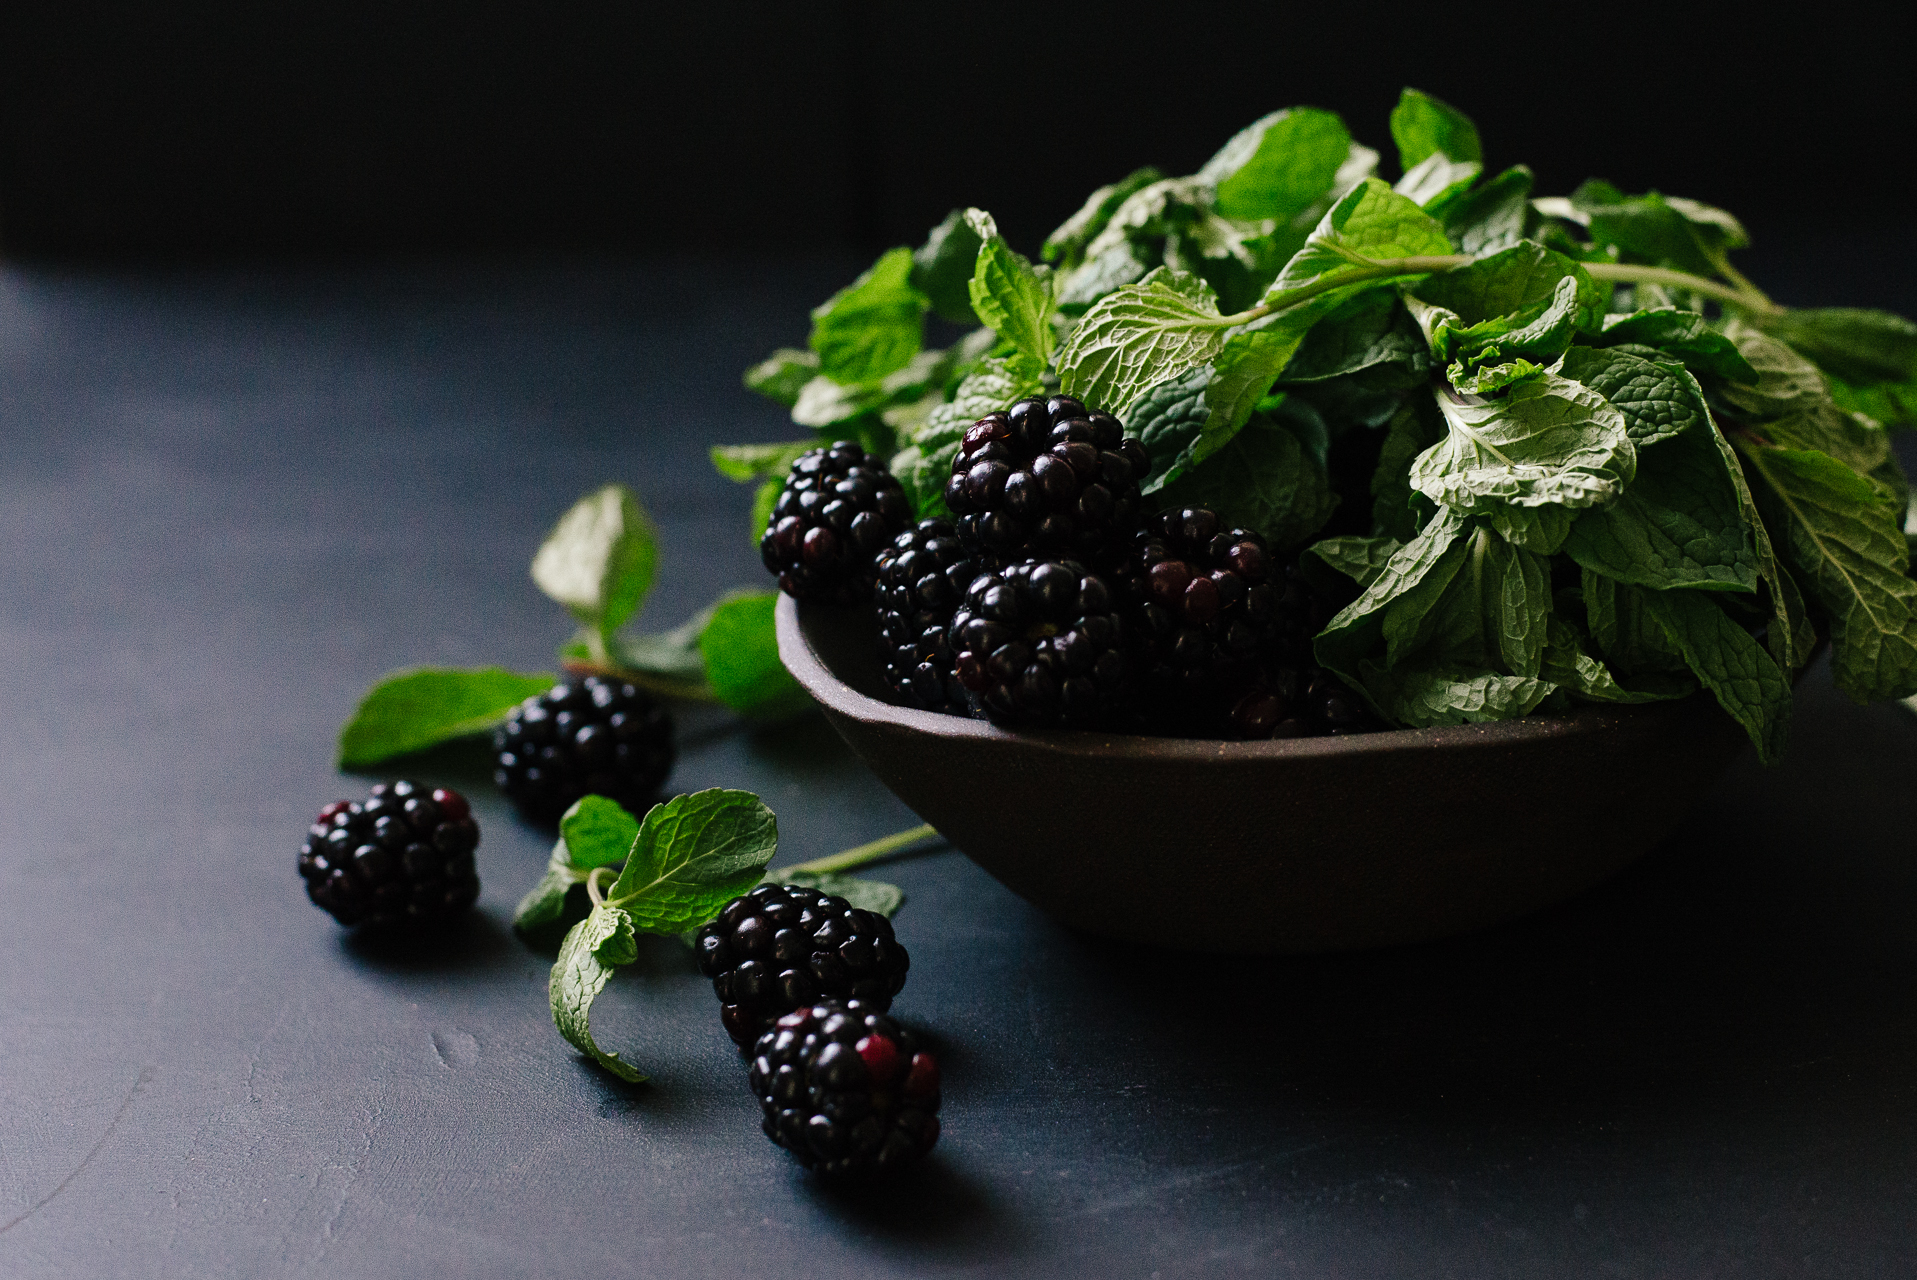 Blackberries & Mint | Flavors of Light